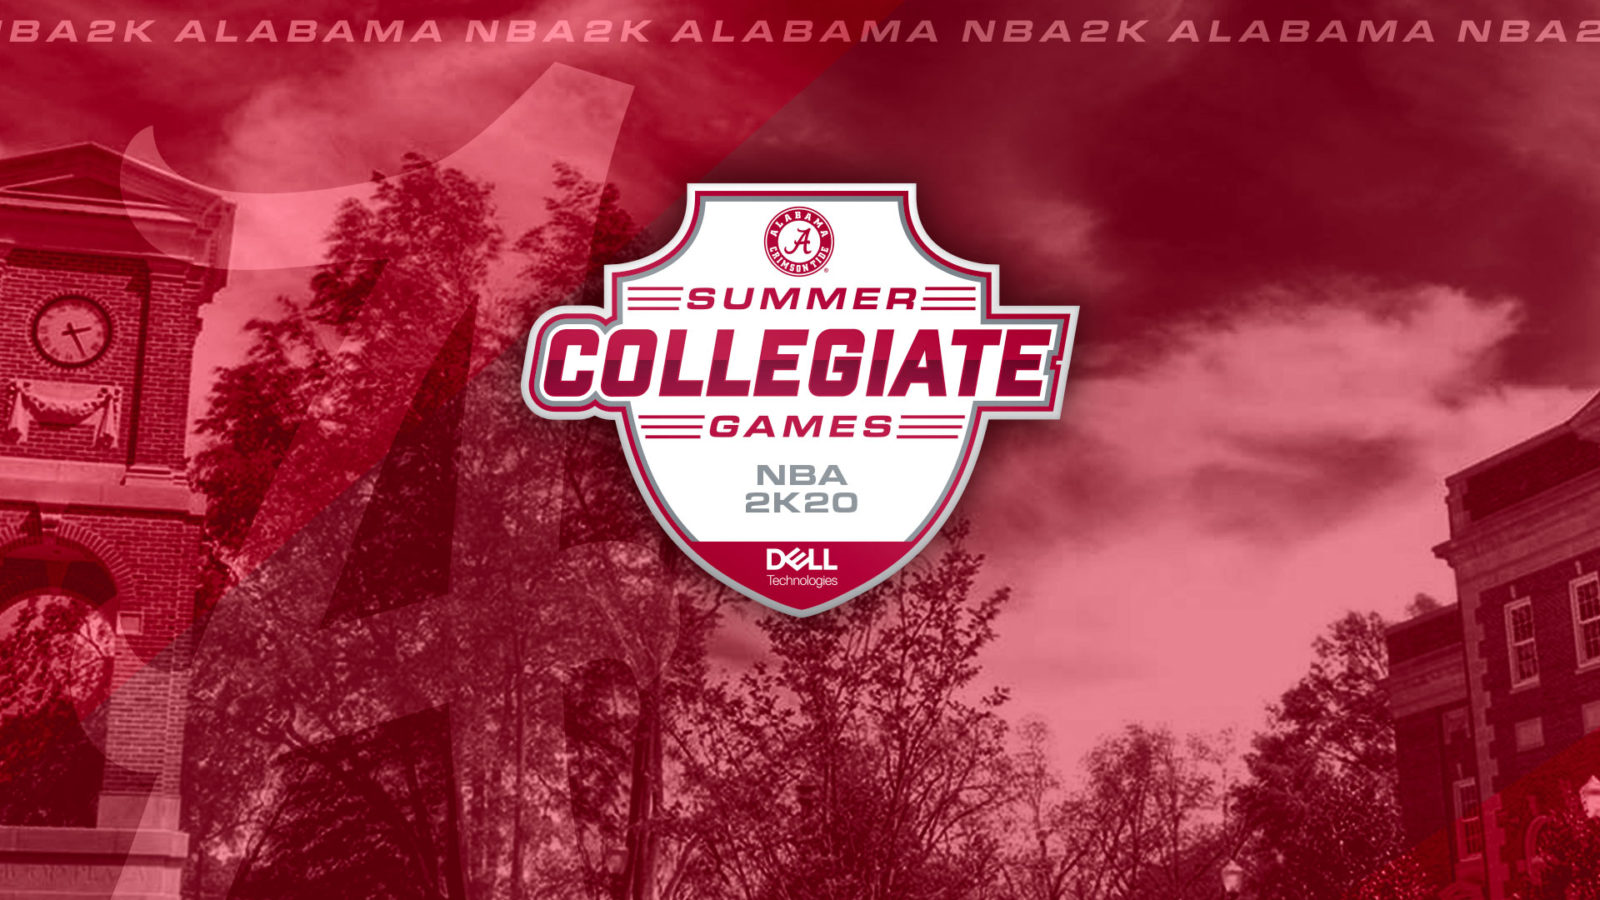 University of Alabama Madded Esports Series